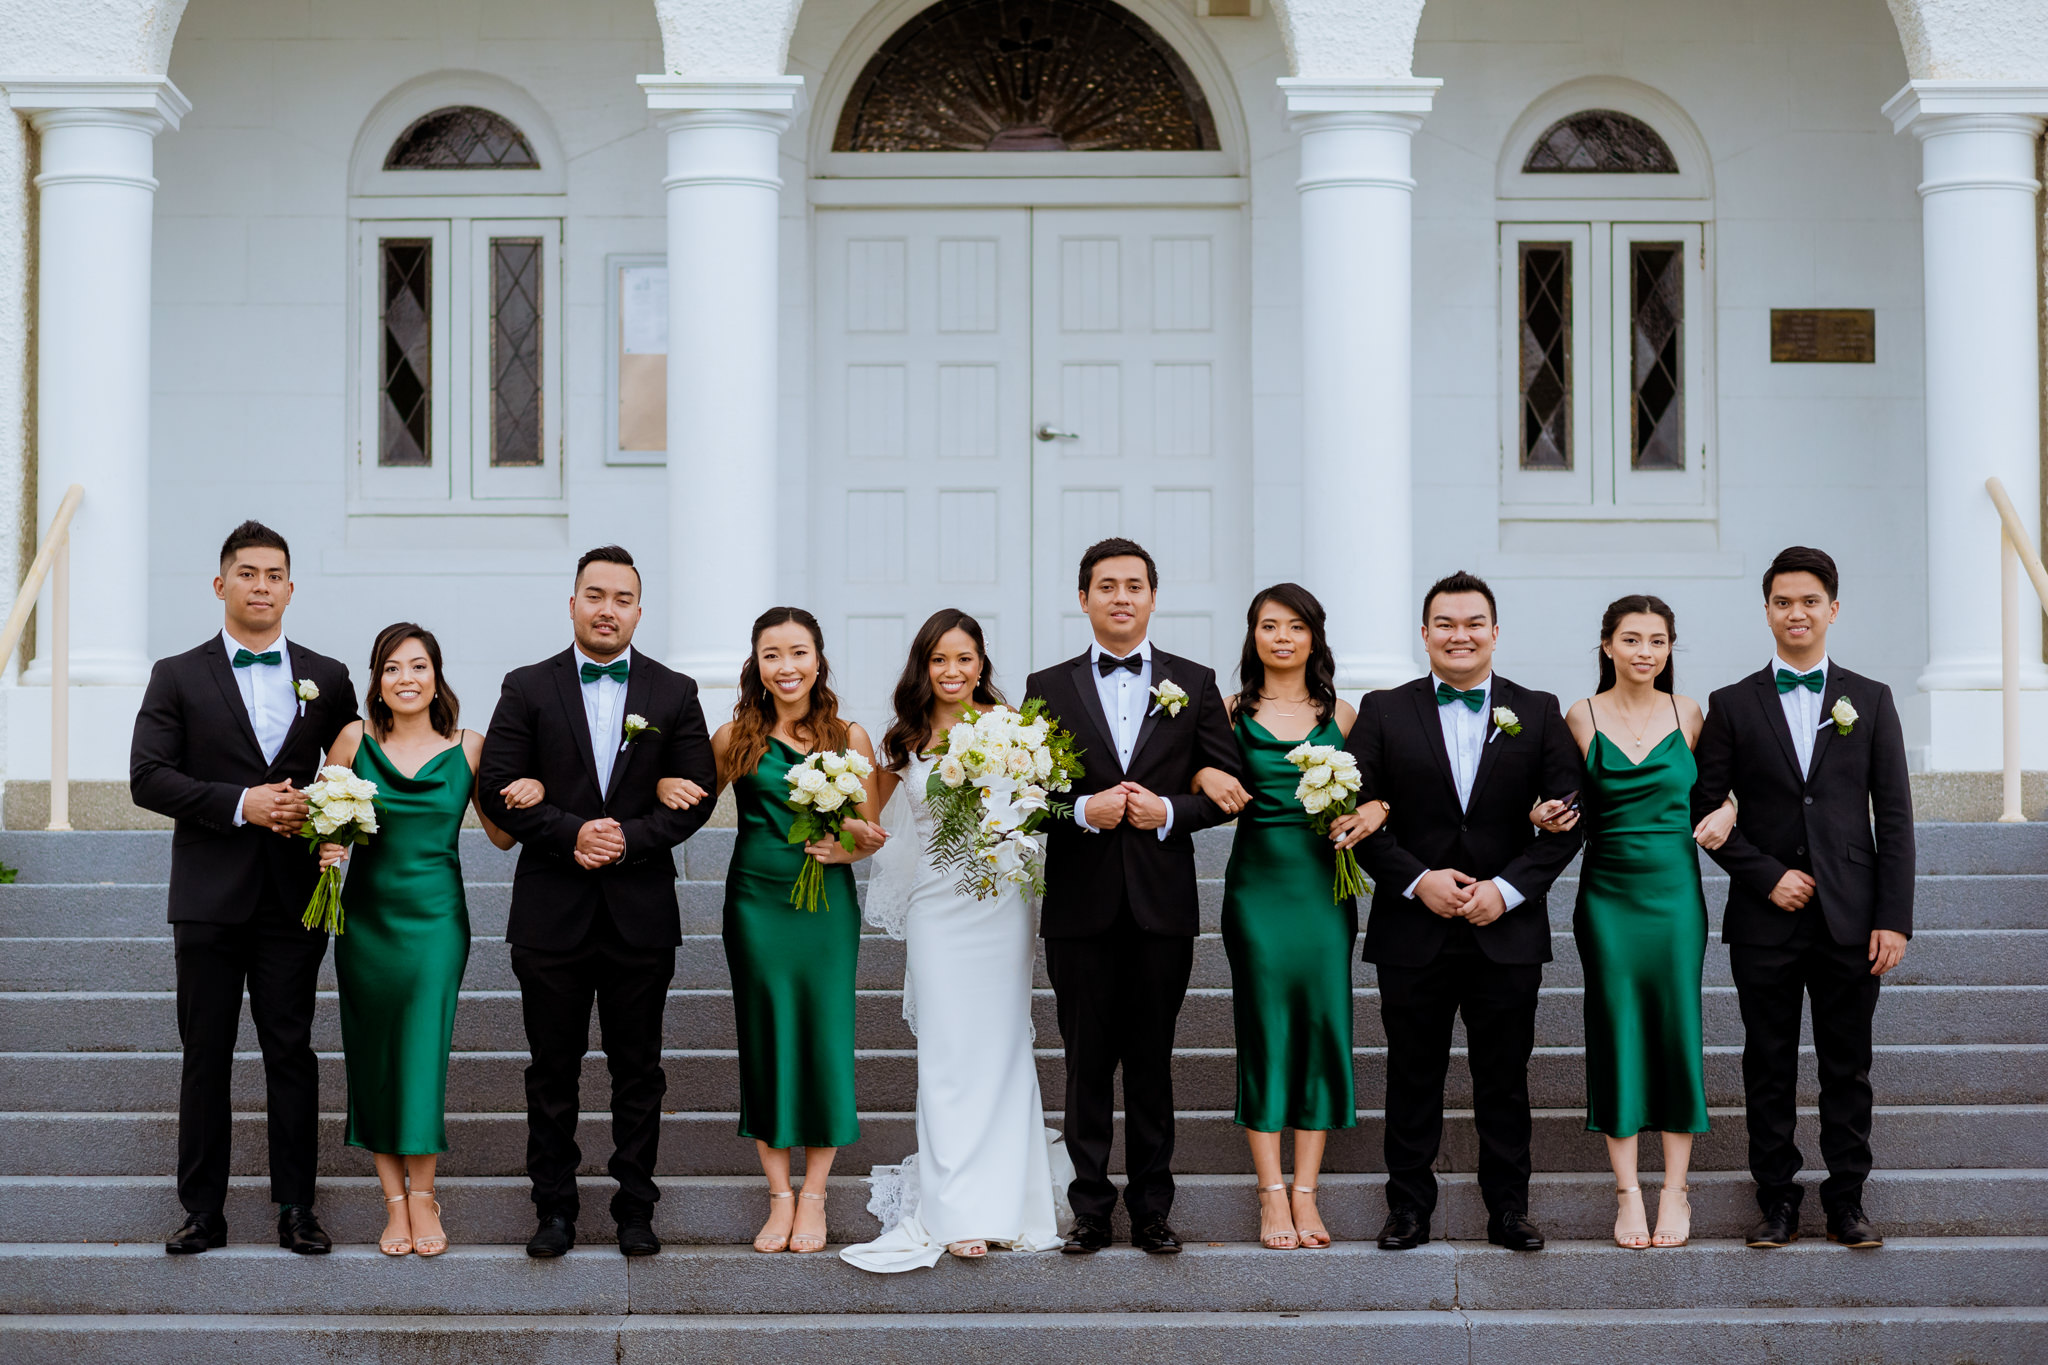 Bridal party lined up with arms linked on the steps of a church